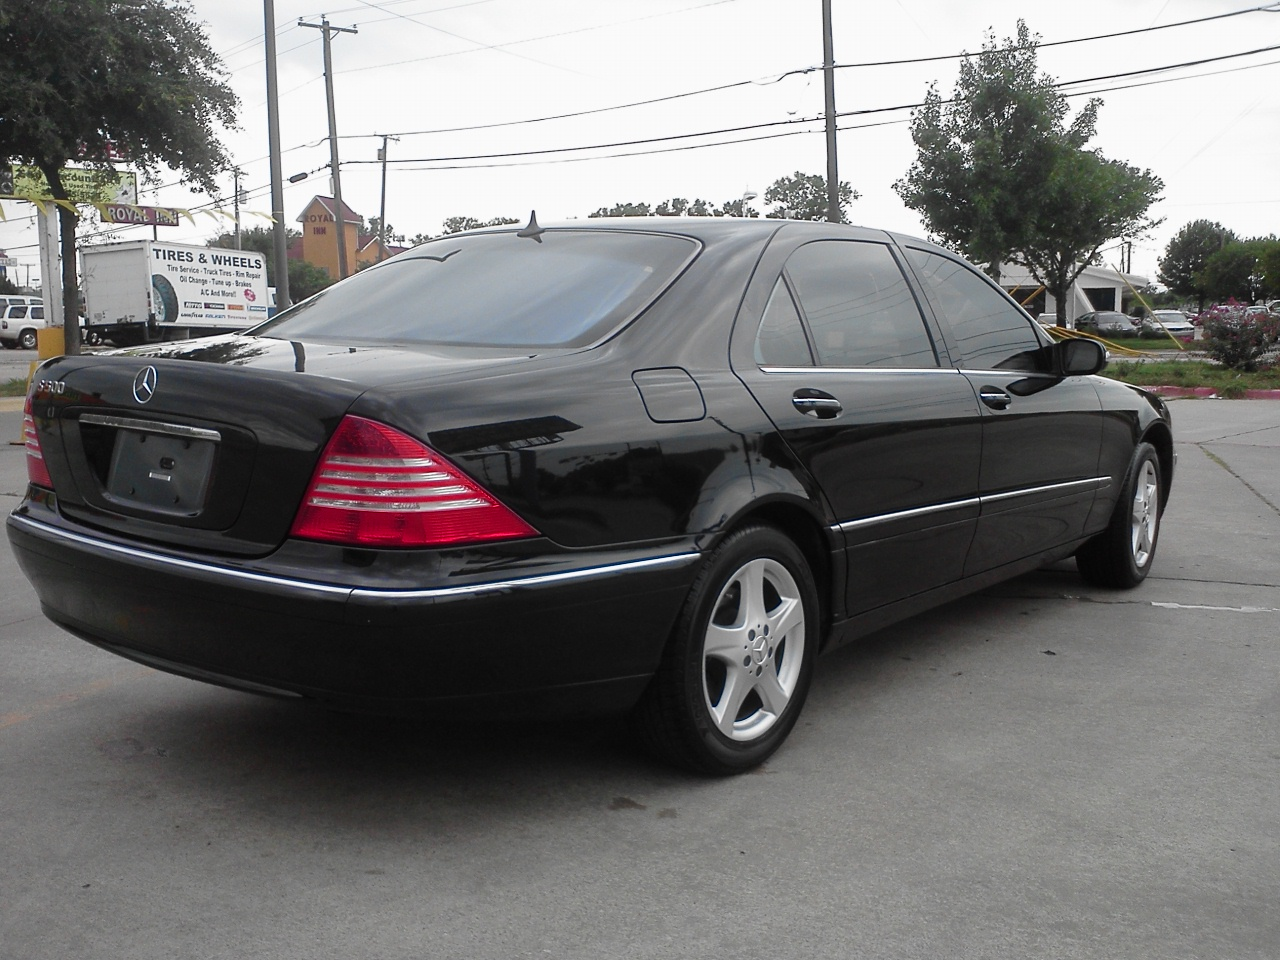 2004 mercedes benz s class pictures cargurus for Mercedes benz s500